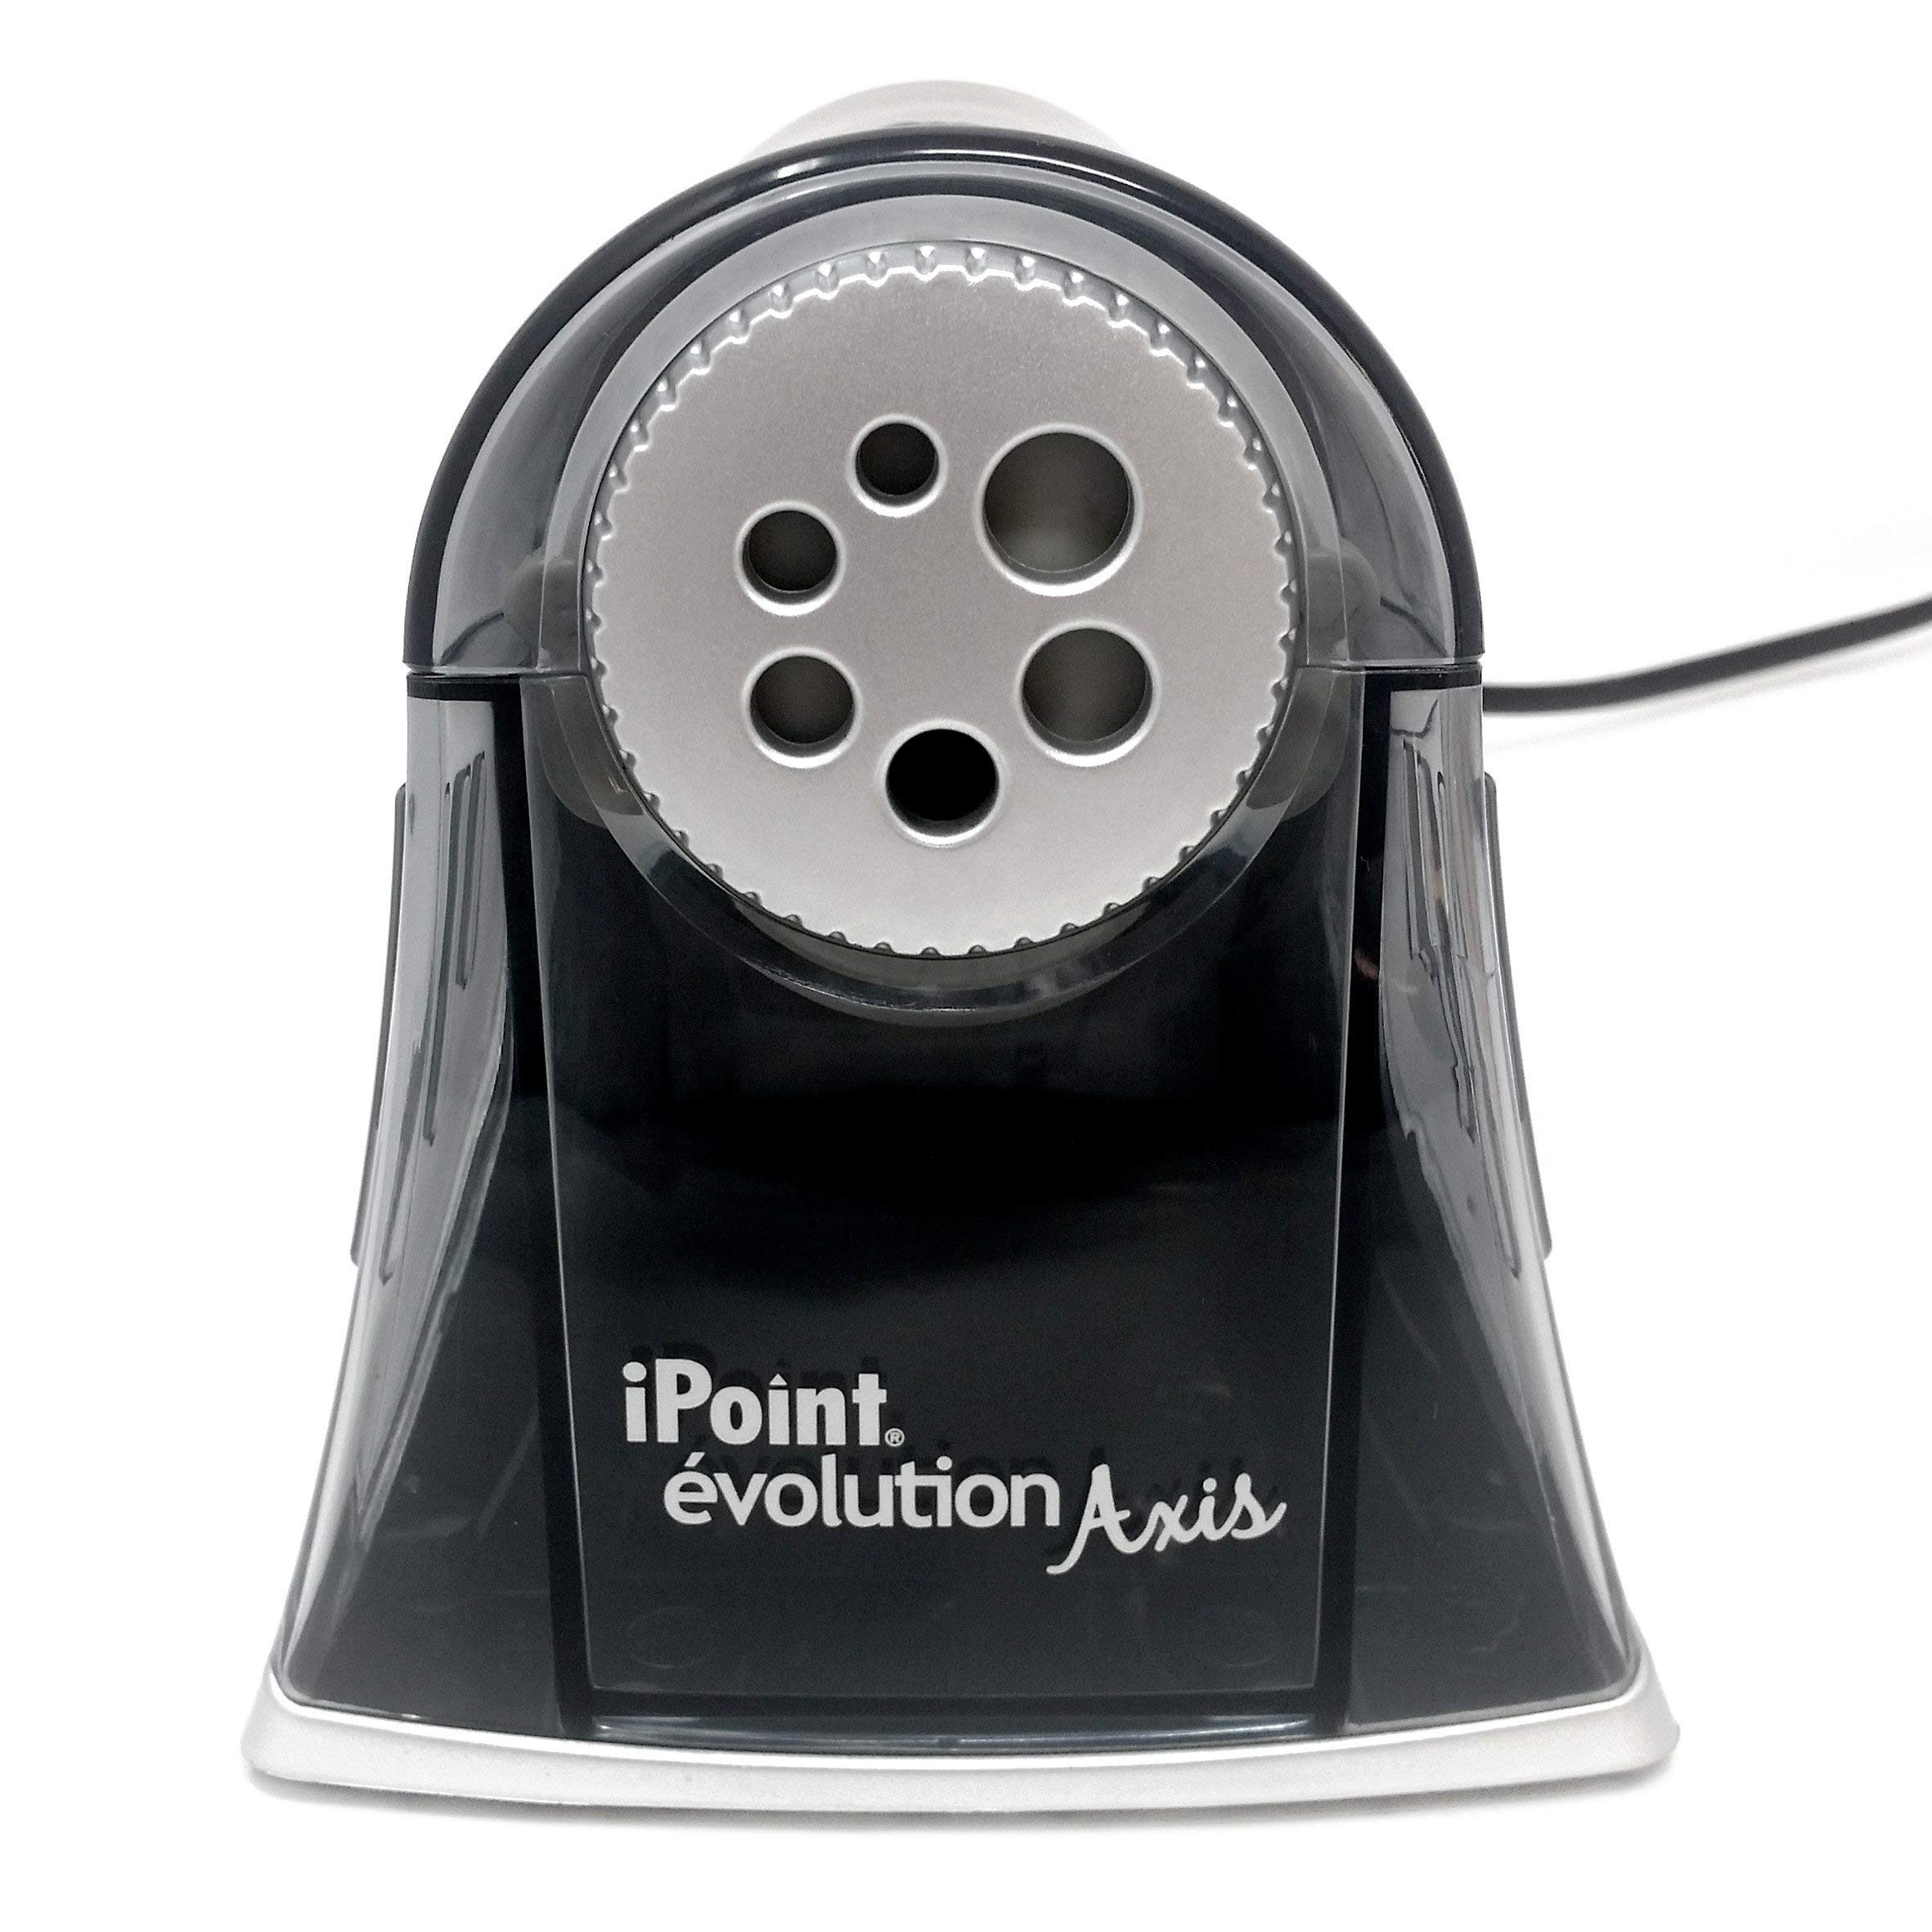 Westcott - iPoint évolution Axis - Auto-Stop Electric Desktop Pencil Sharpener with UK Plug - Carbon Steel Blades